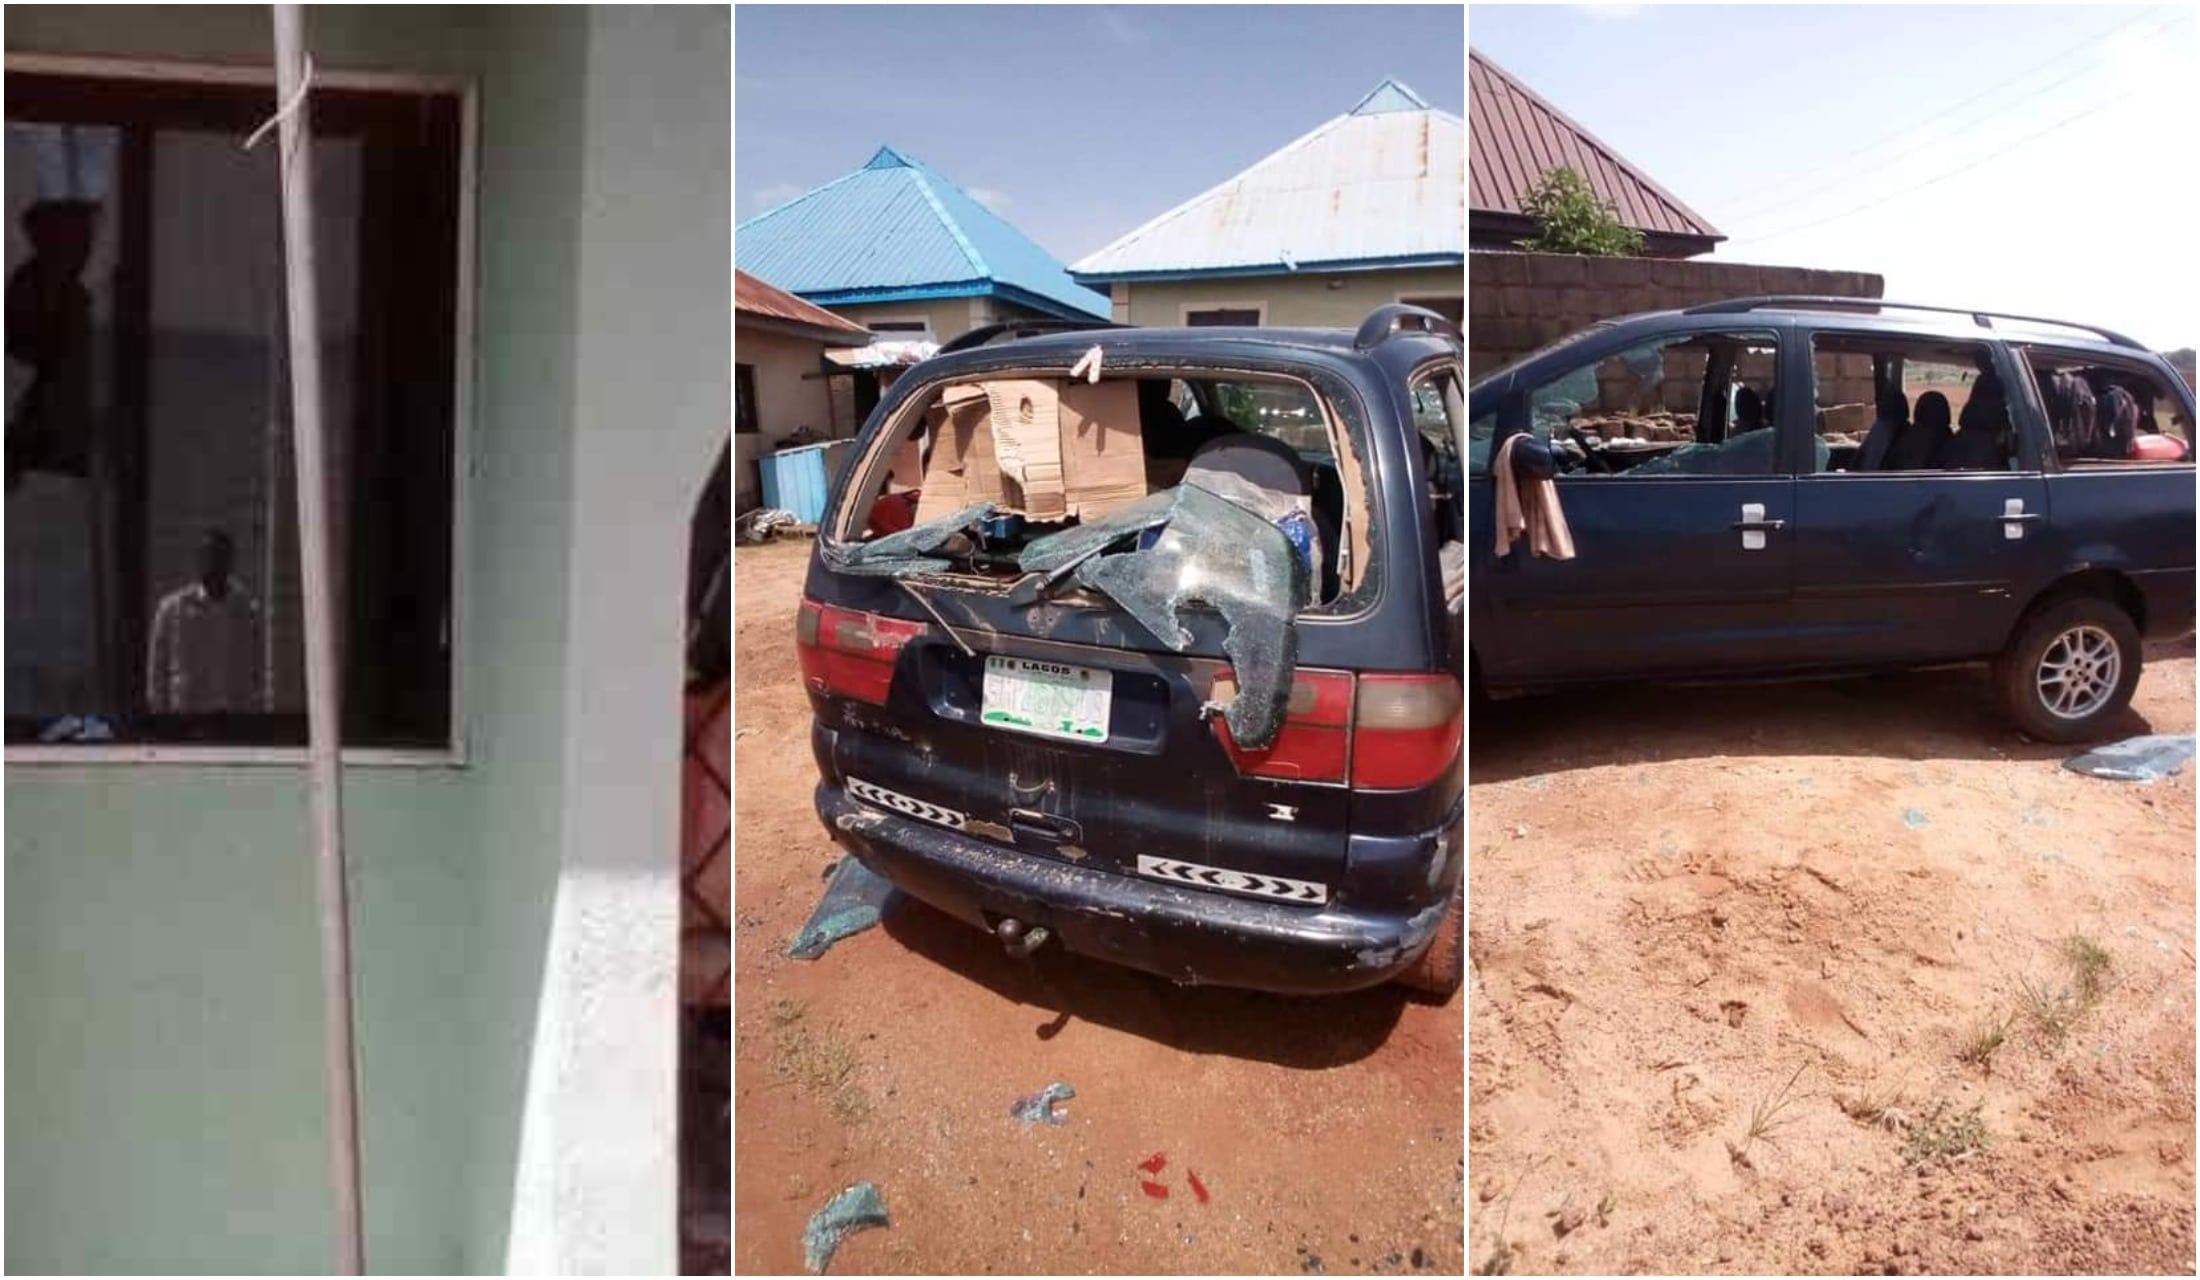 Irate mob destroyed whistle blowers' house